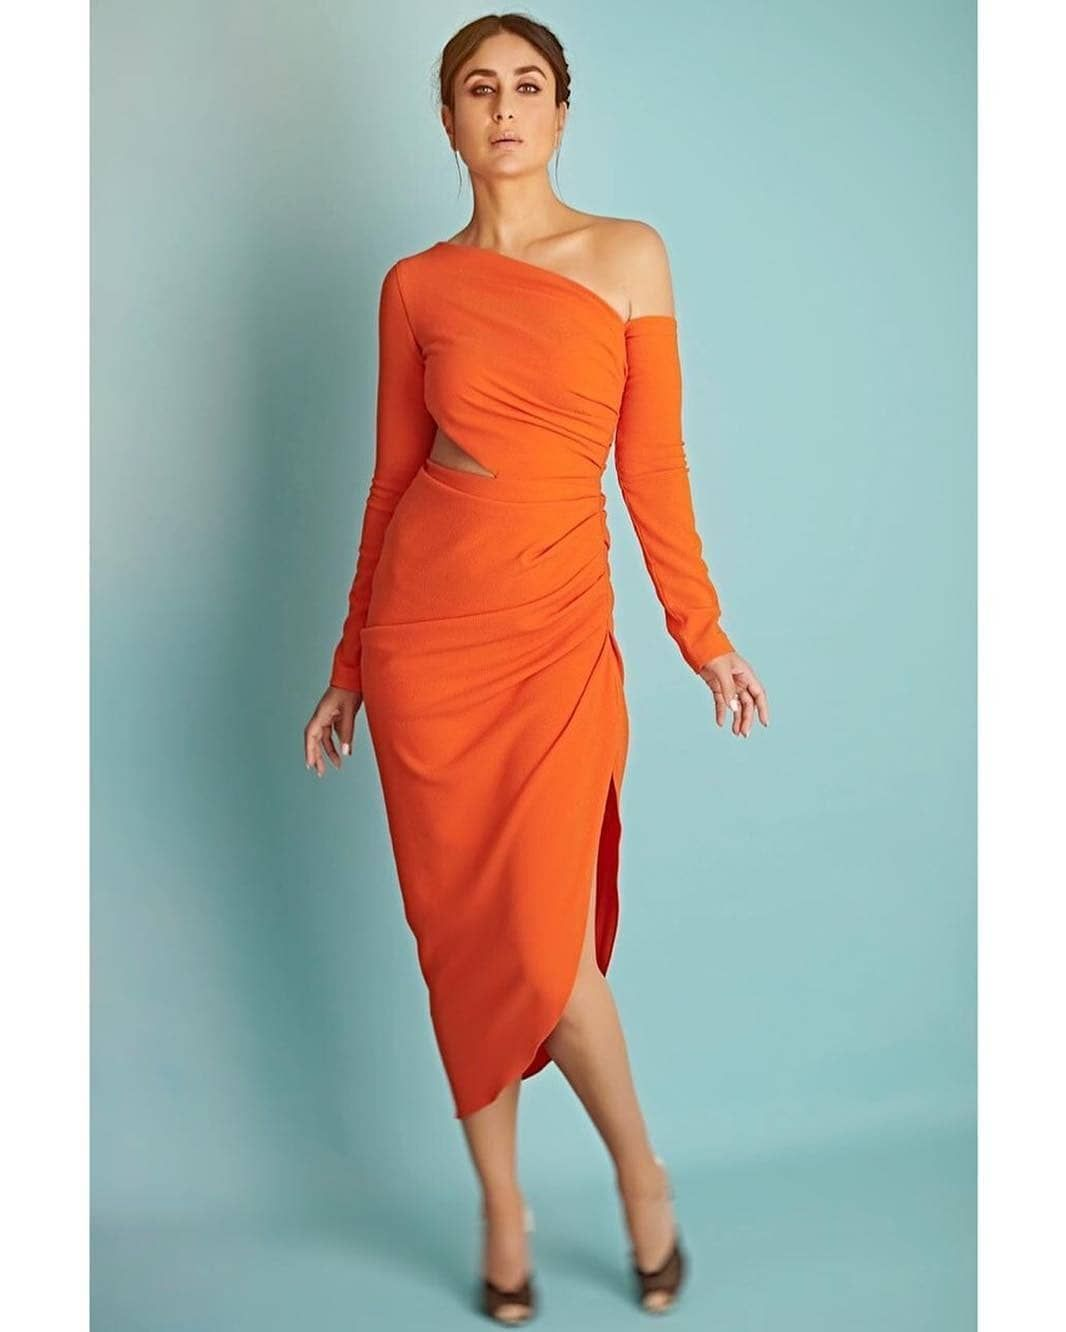 Kareena Kapoor Khan Embraces A Cheerful Orange Number By Gauri & Nainika For The Episode Of DID and Takes Our Breath Away - HungryBoo